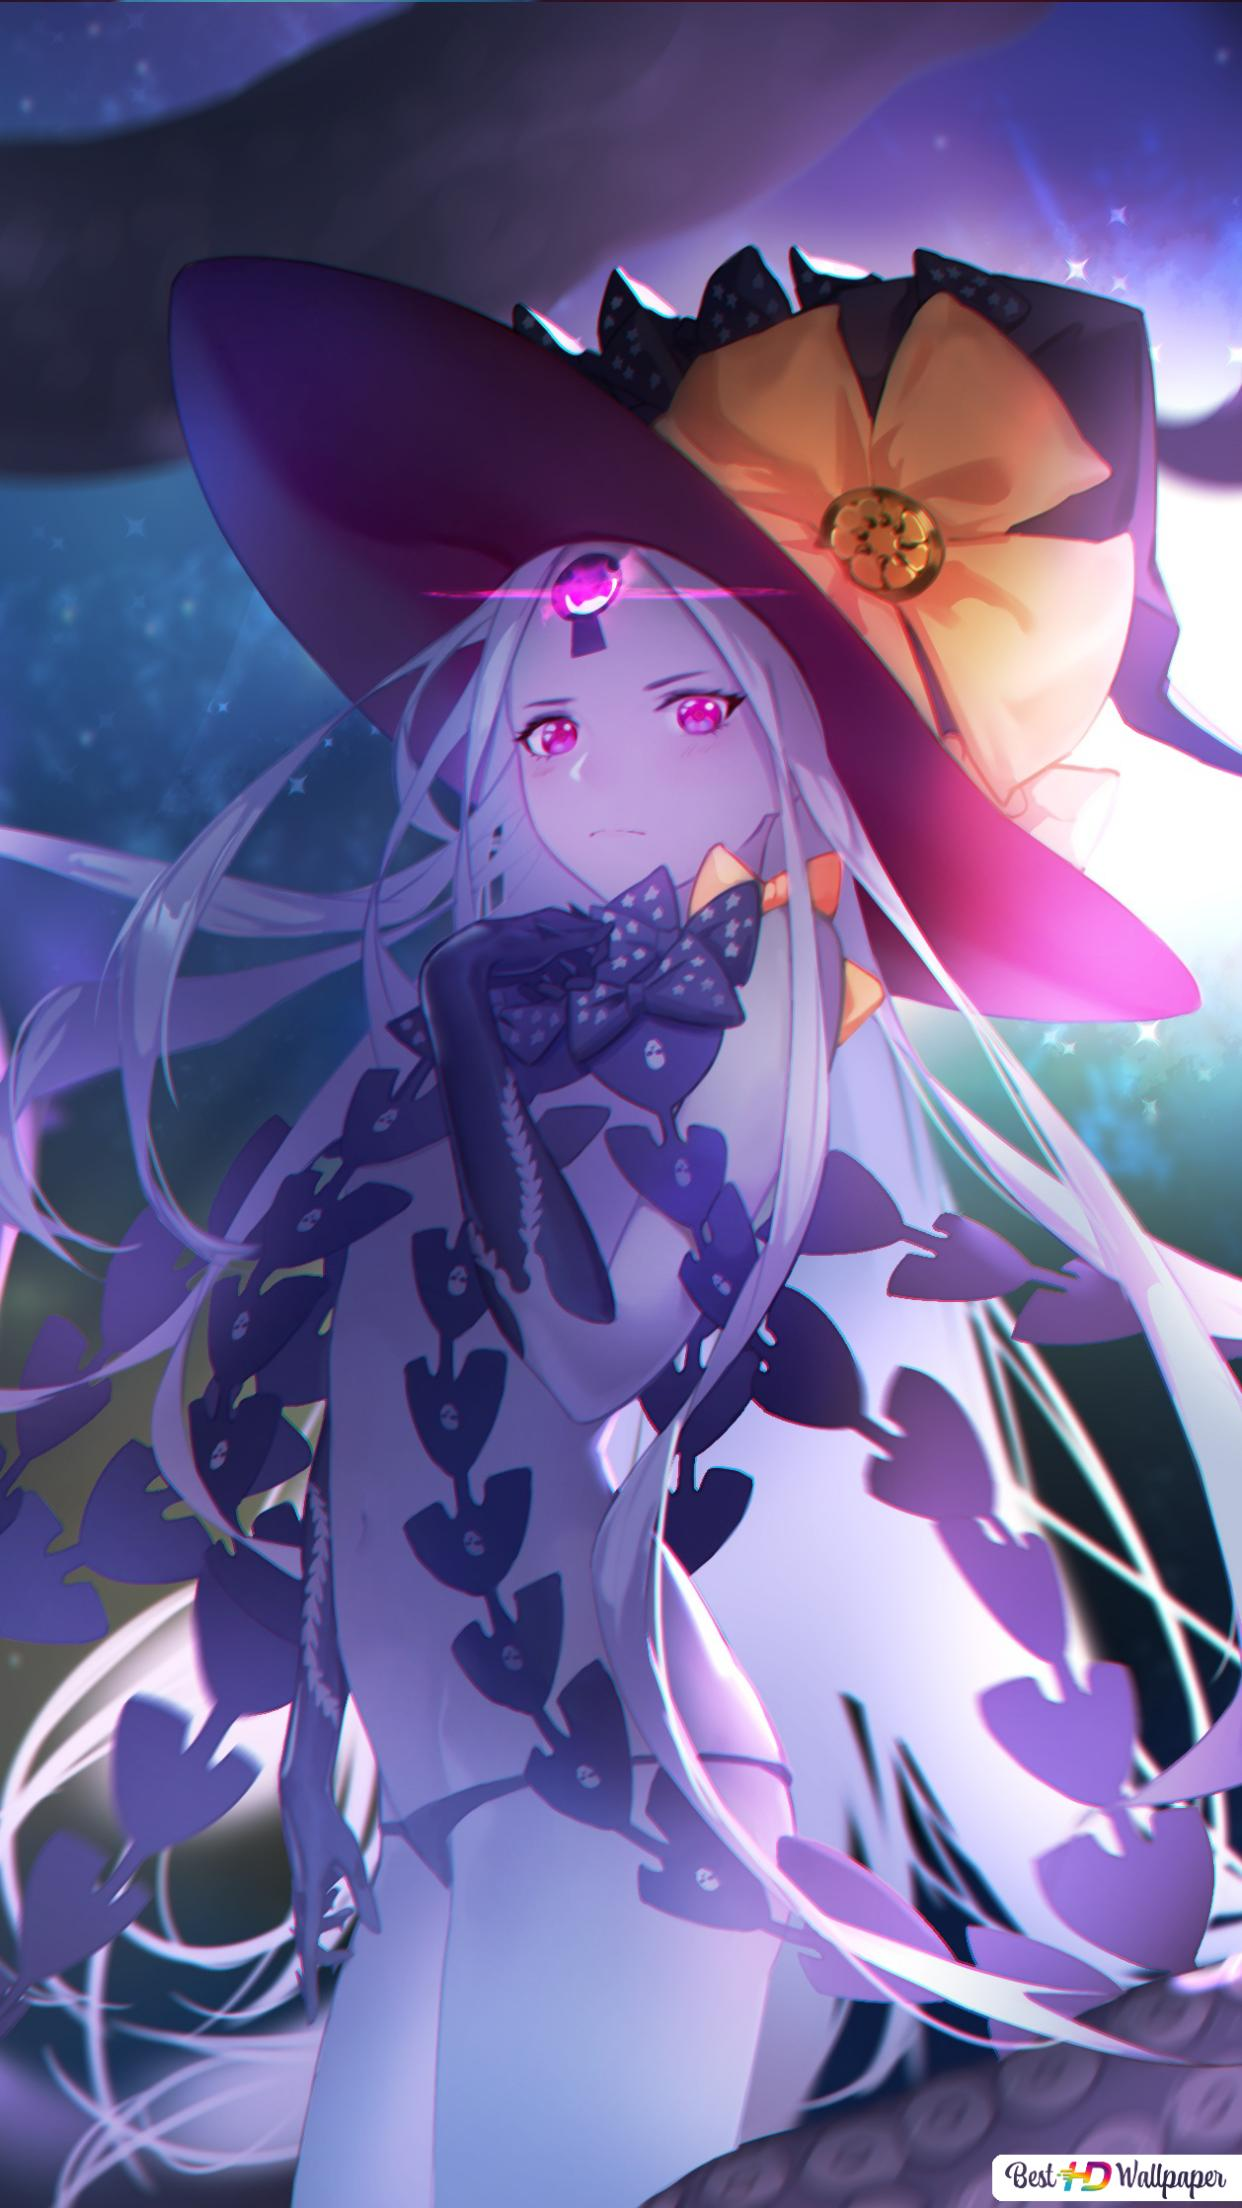 Fate Grand Order Abigail Williams Foreigner Hd Wallpaper Download